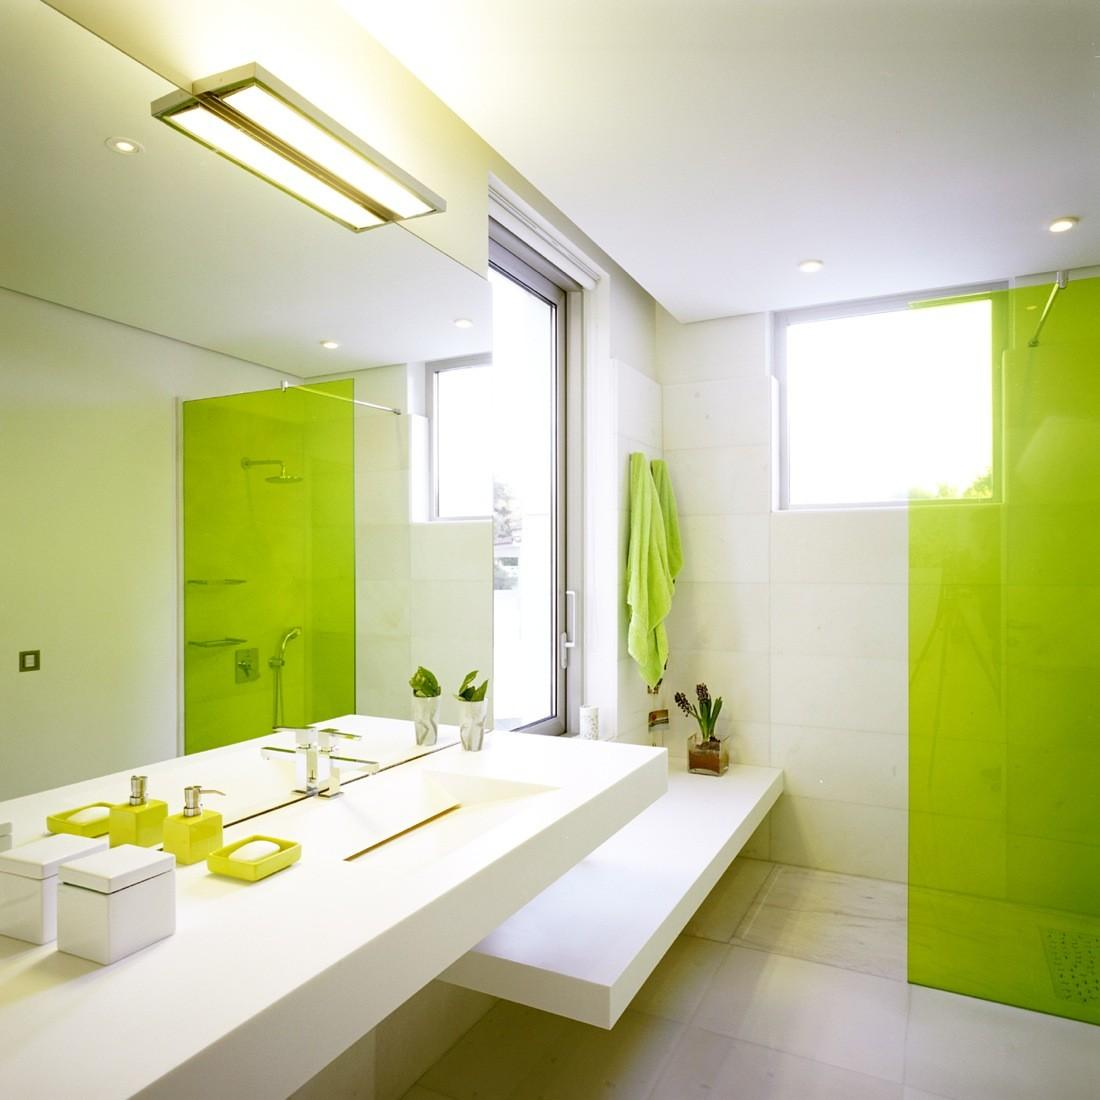 Minimalist Bathroom Designs Home Project